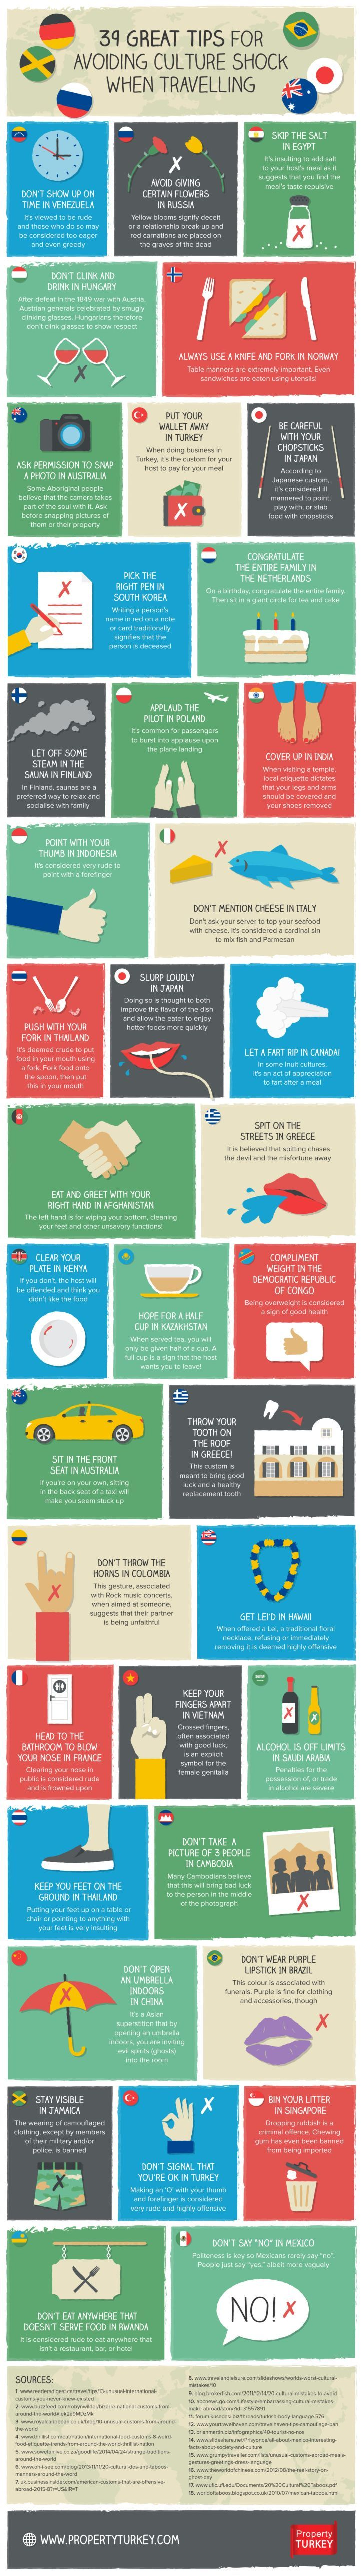 39 Great Tips For Avoiding Culture Shock When Travelling #Infographic #Travel